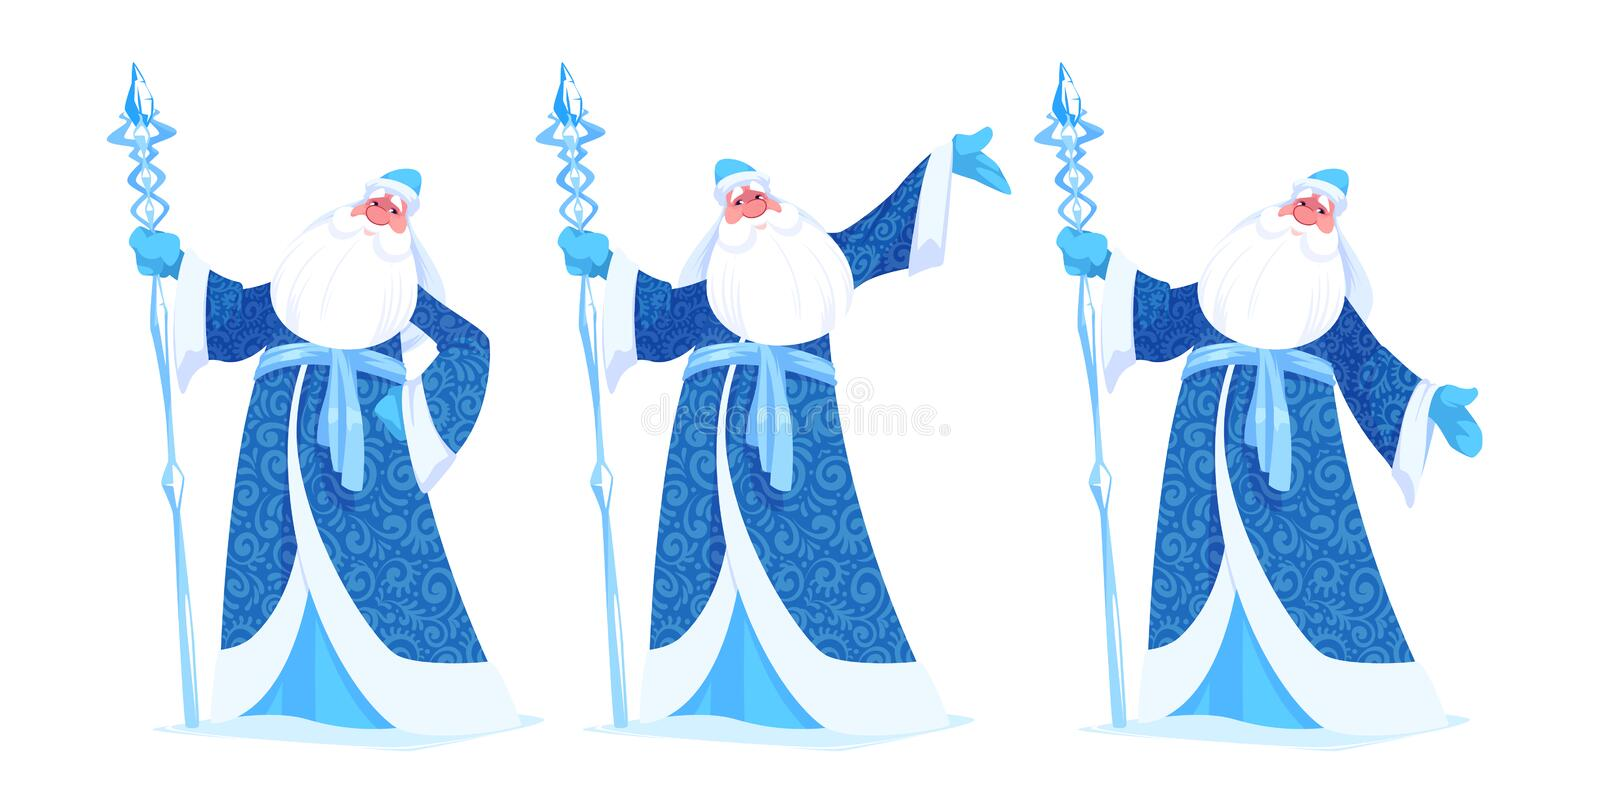 Padre russo Frost o Ded Moroz royalty illustrazione gratis